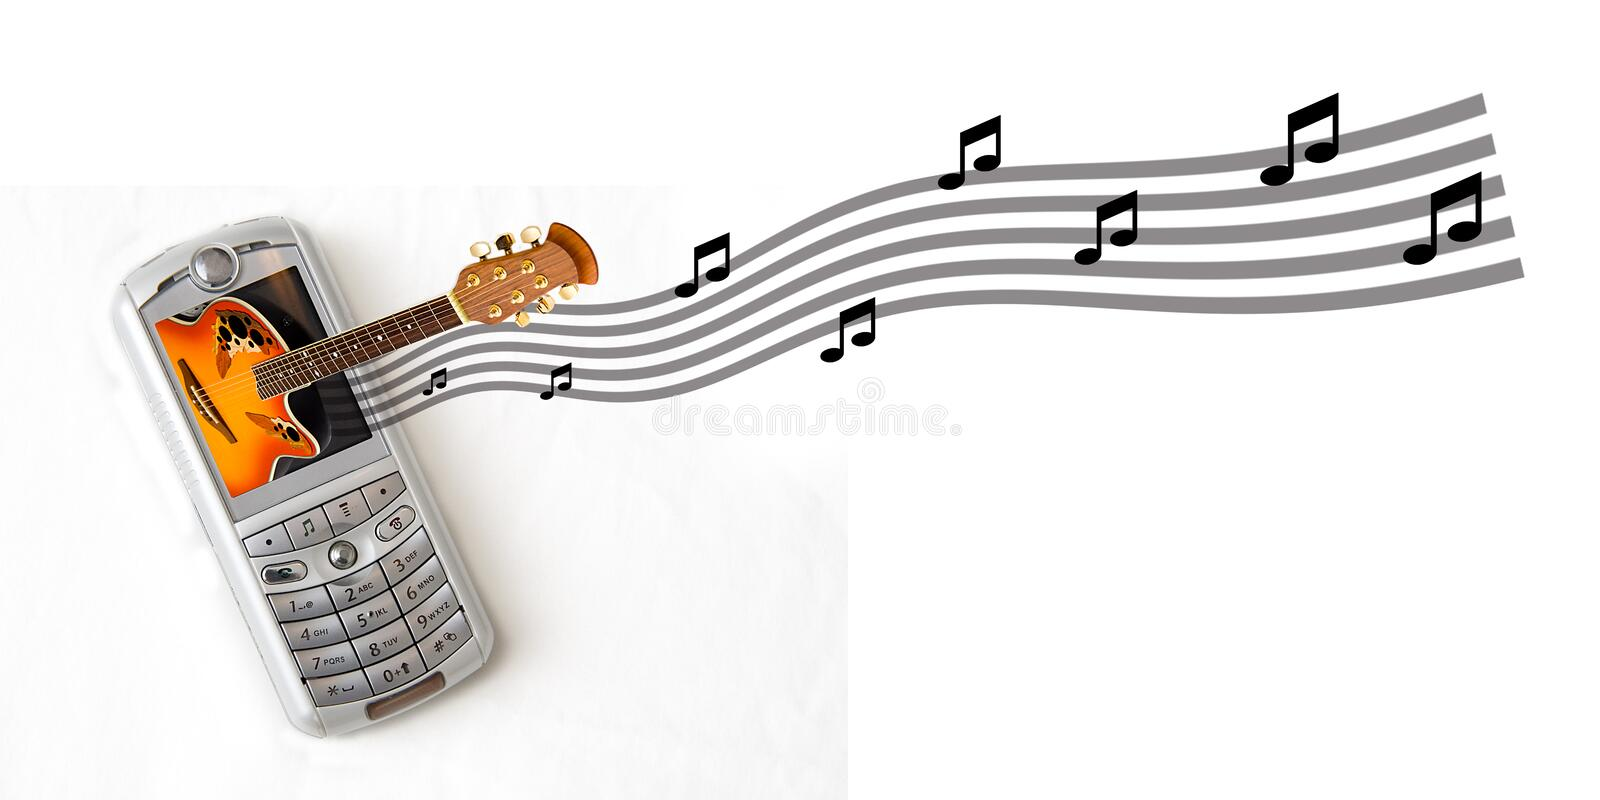 Video Phone royalty free stock images